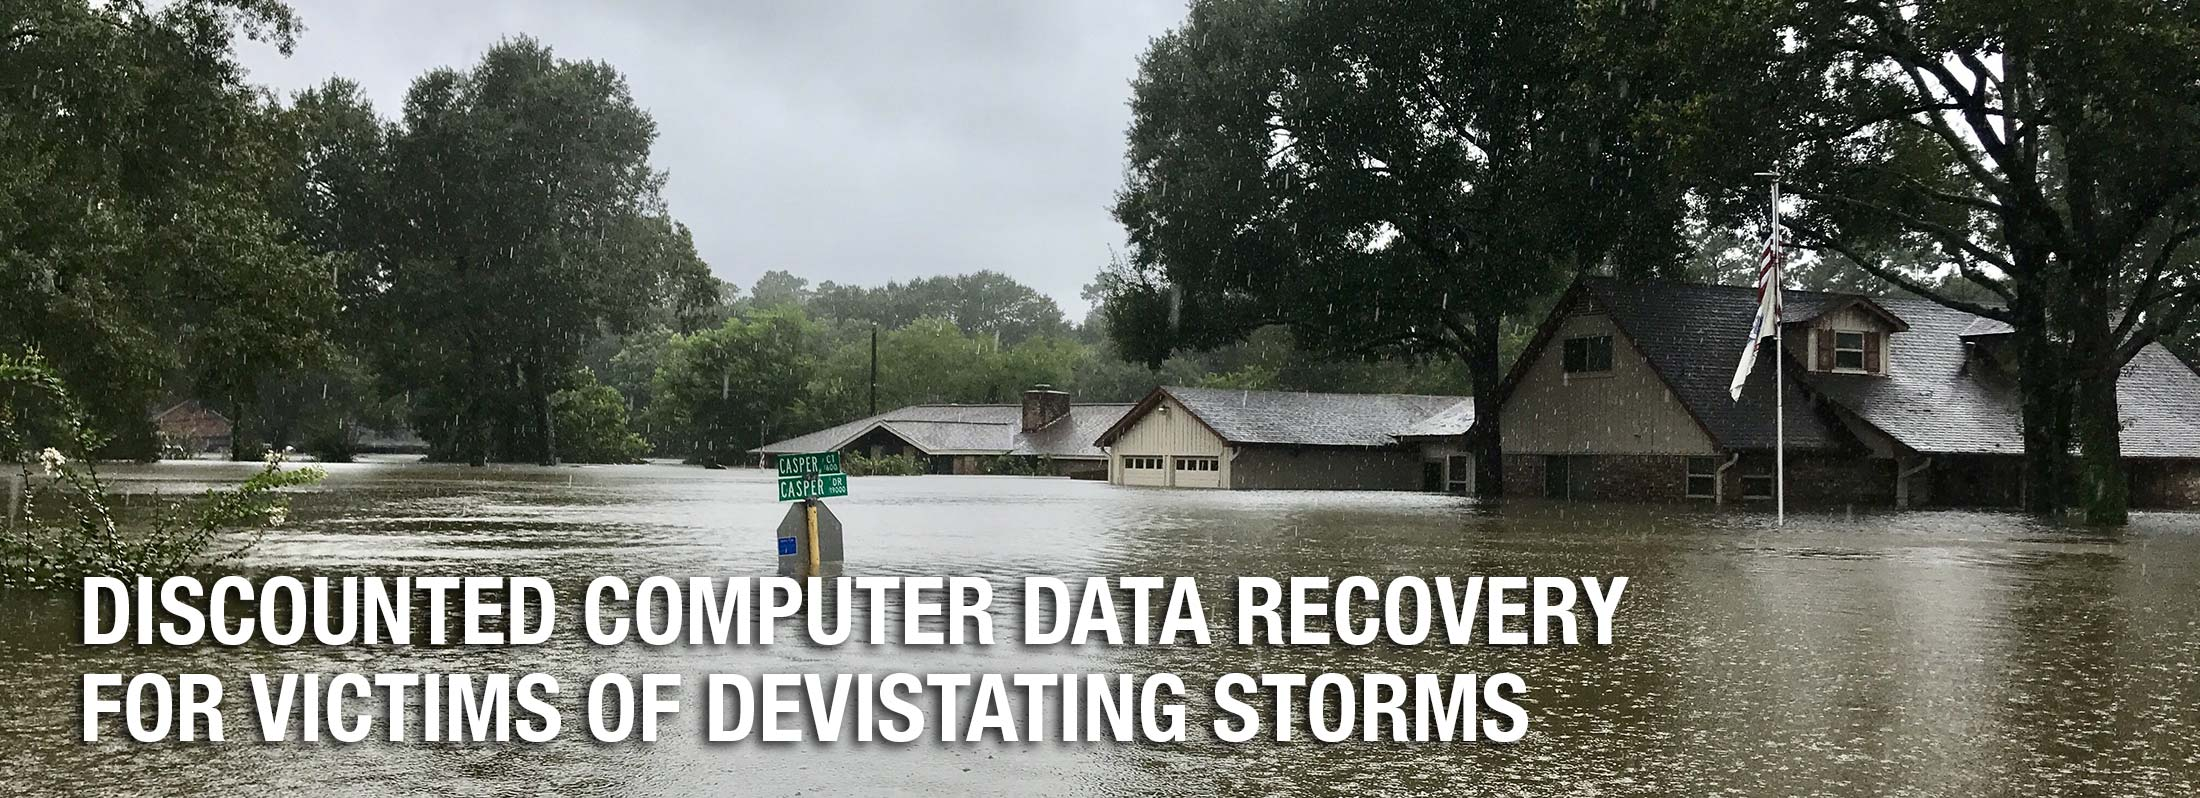 disaster data recovery fire flood recovery